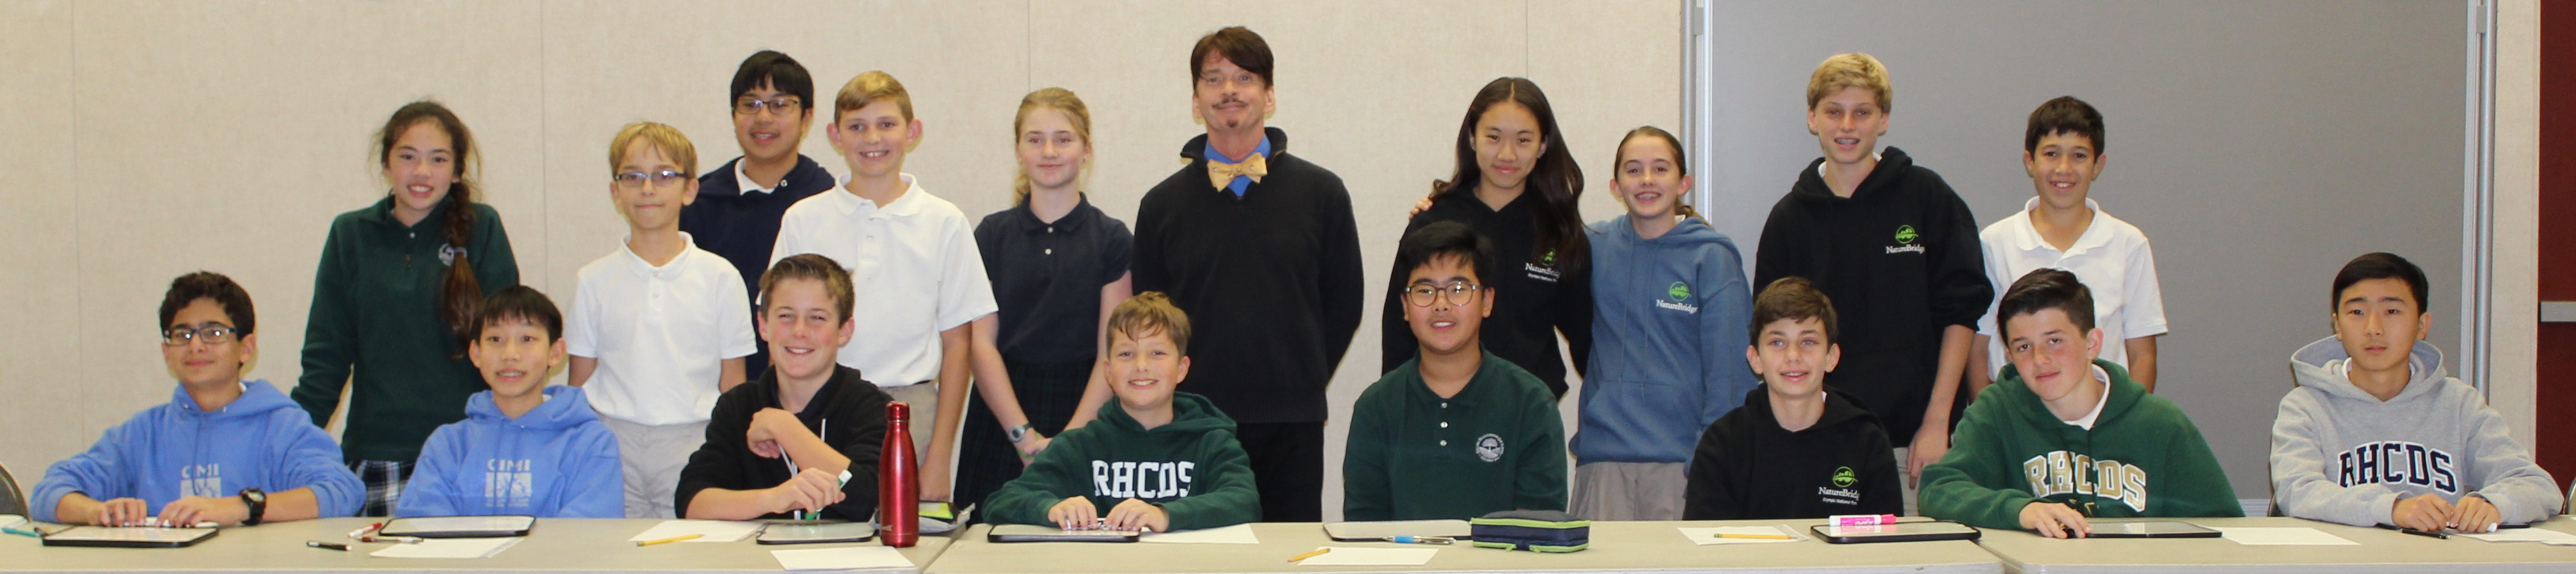 RHCDS First Annual Science Bowl